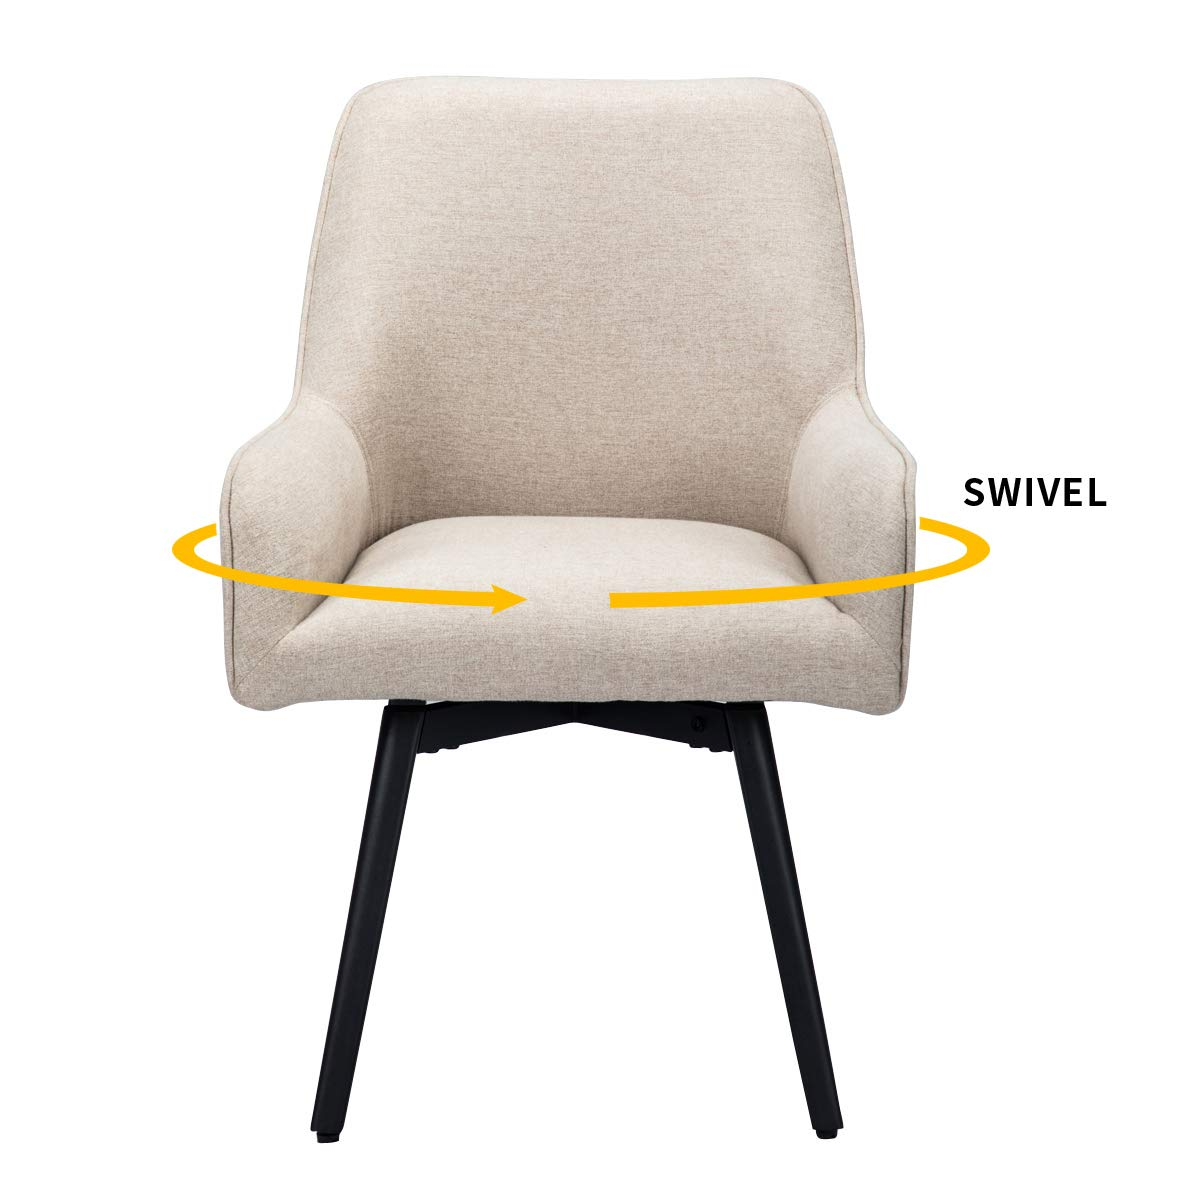 Swivel Dining Room Chairs Upholstered Living Room Chairs Task Chairs